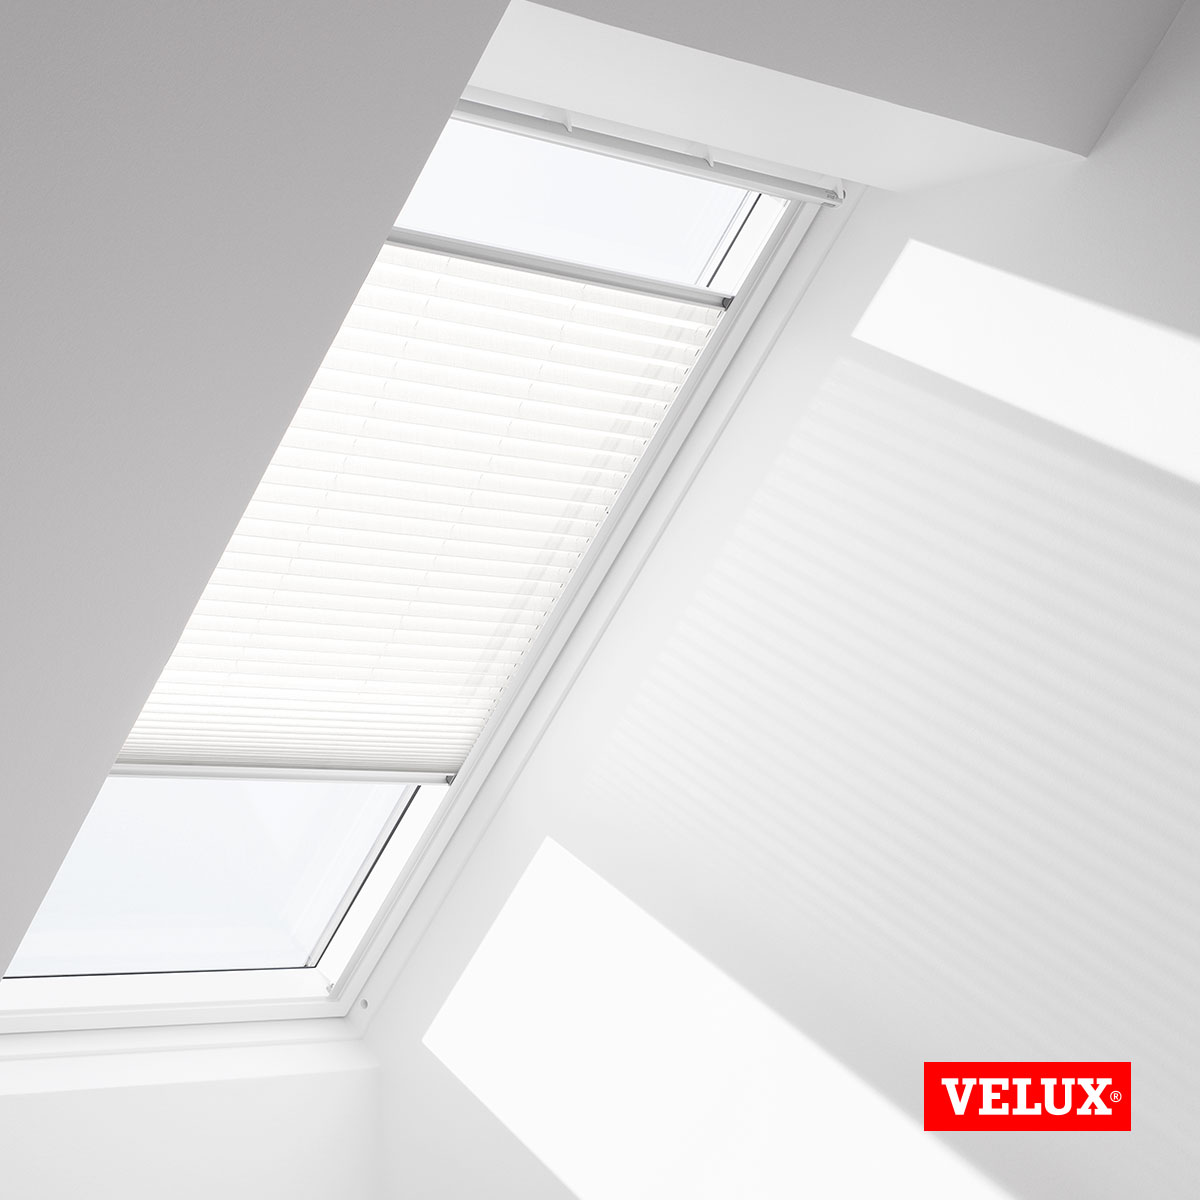 Genuine Velux Pleated Blinds For Skylight Roof Window In Various Colours Ggl Gpl P10 410 3 White 1016